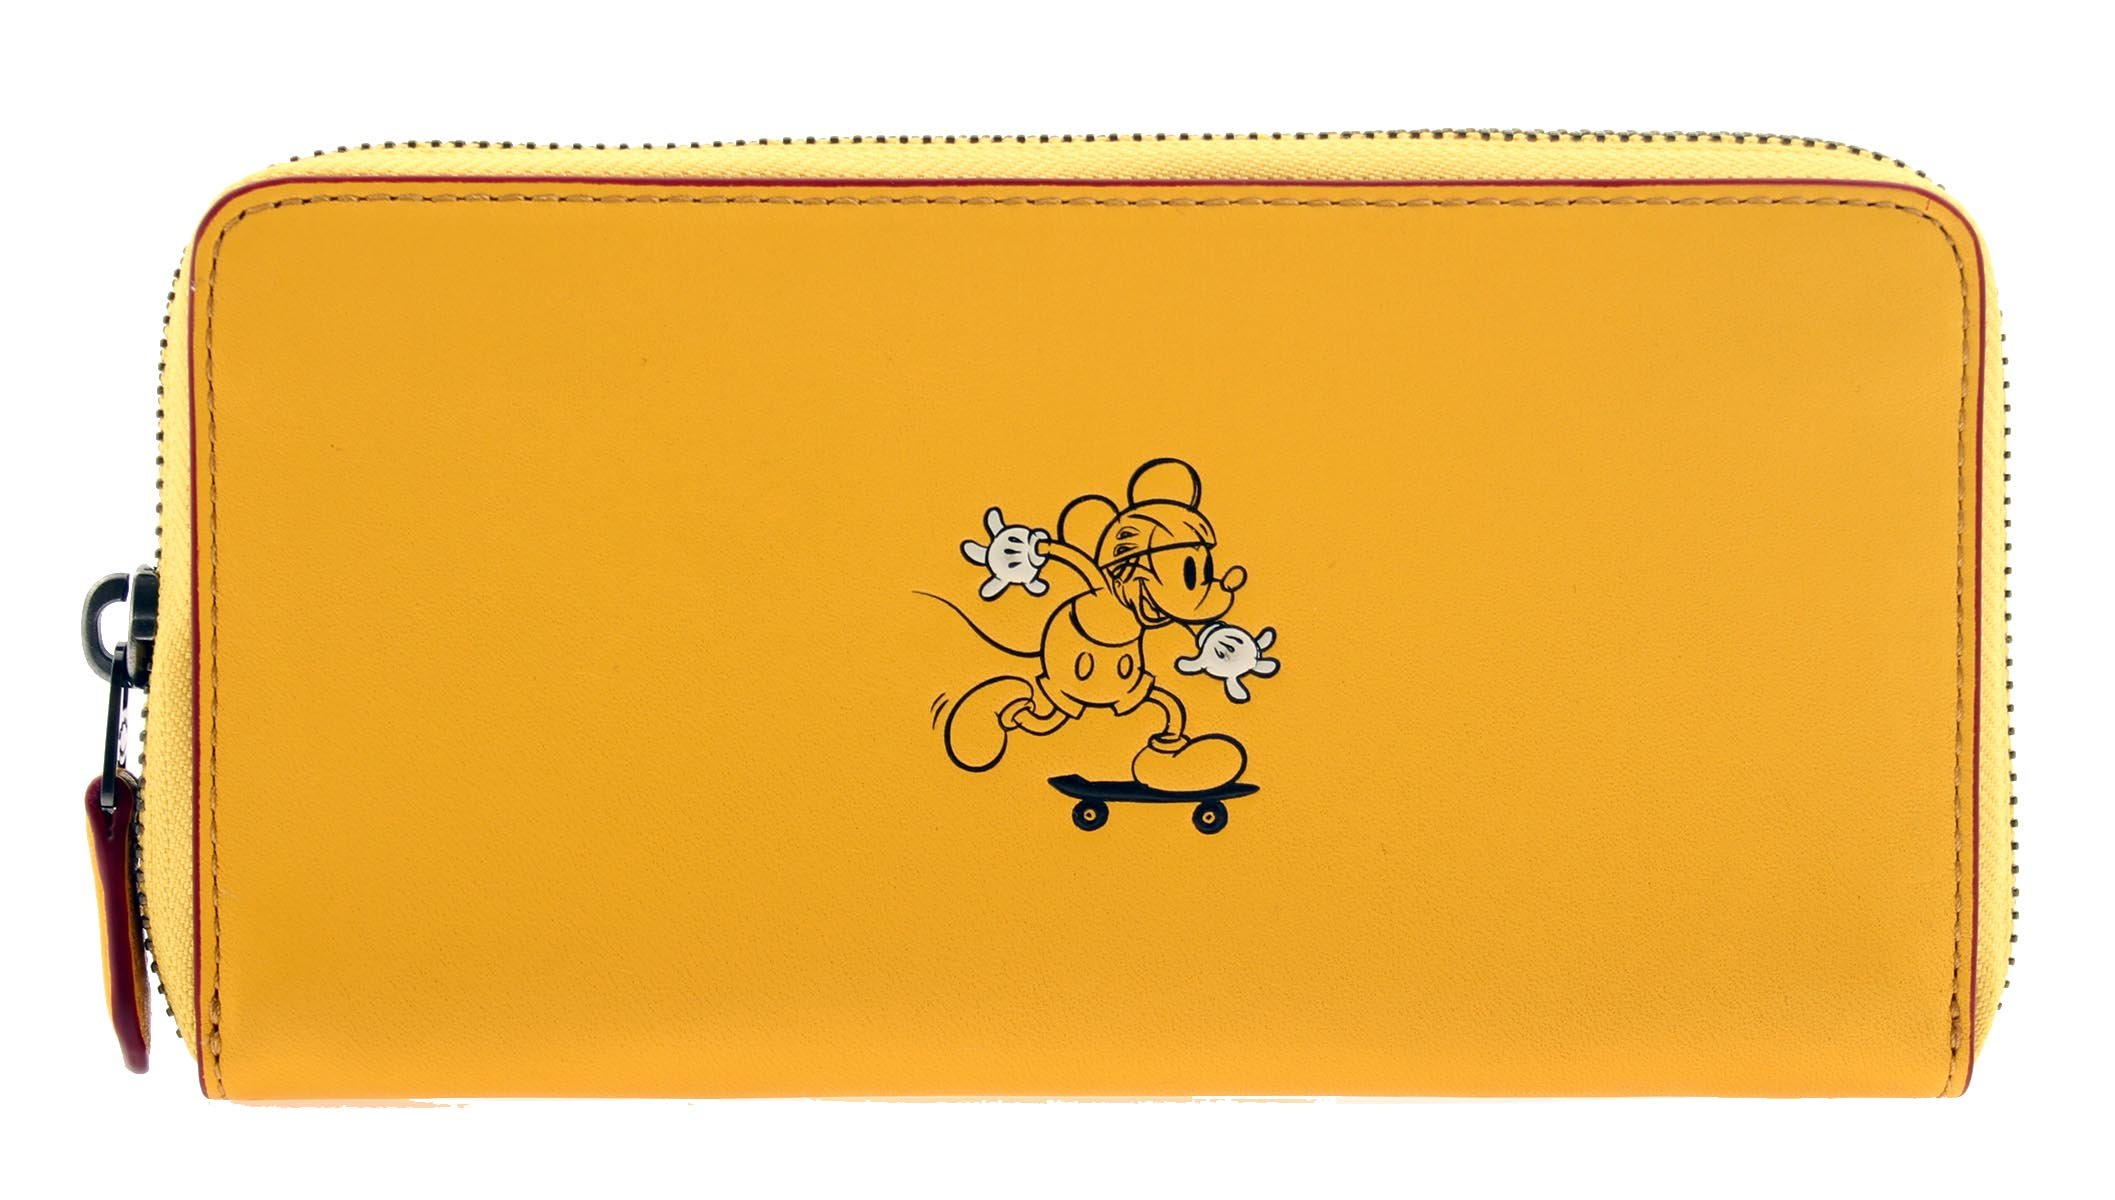 COACH MICKEY Accordion Zip Wallet in Glove Calf Leather Banana